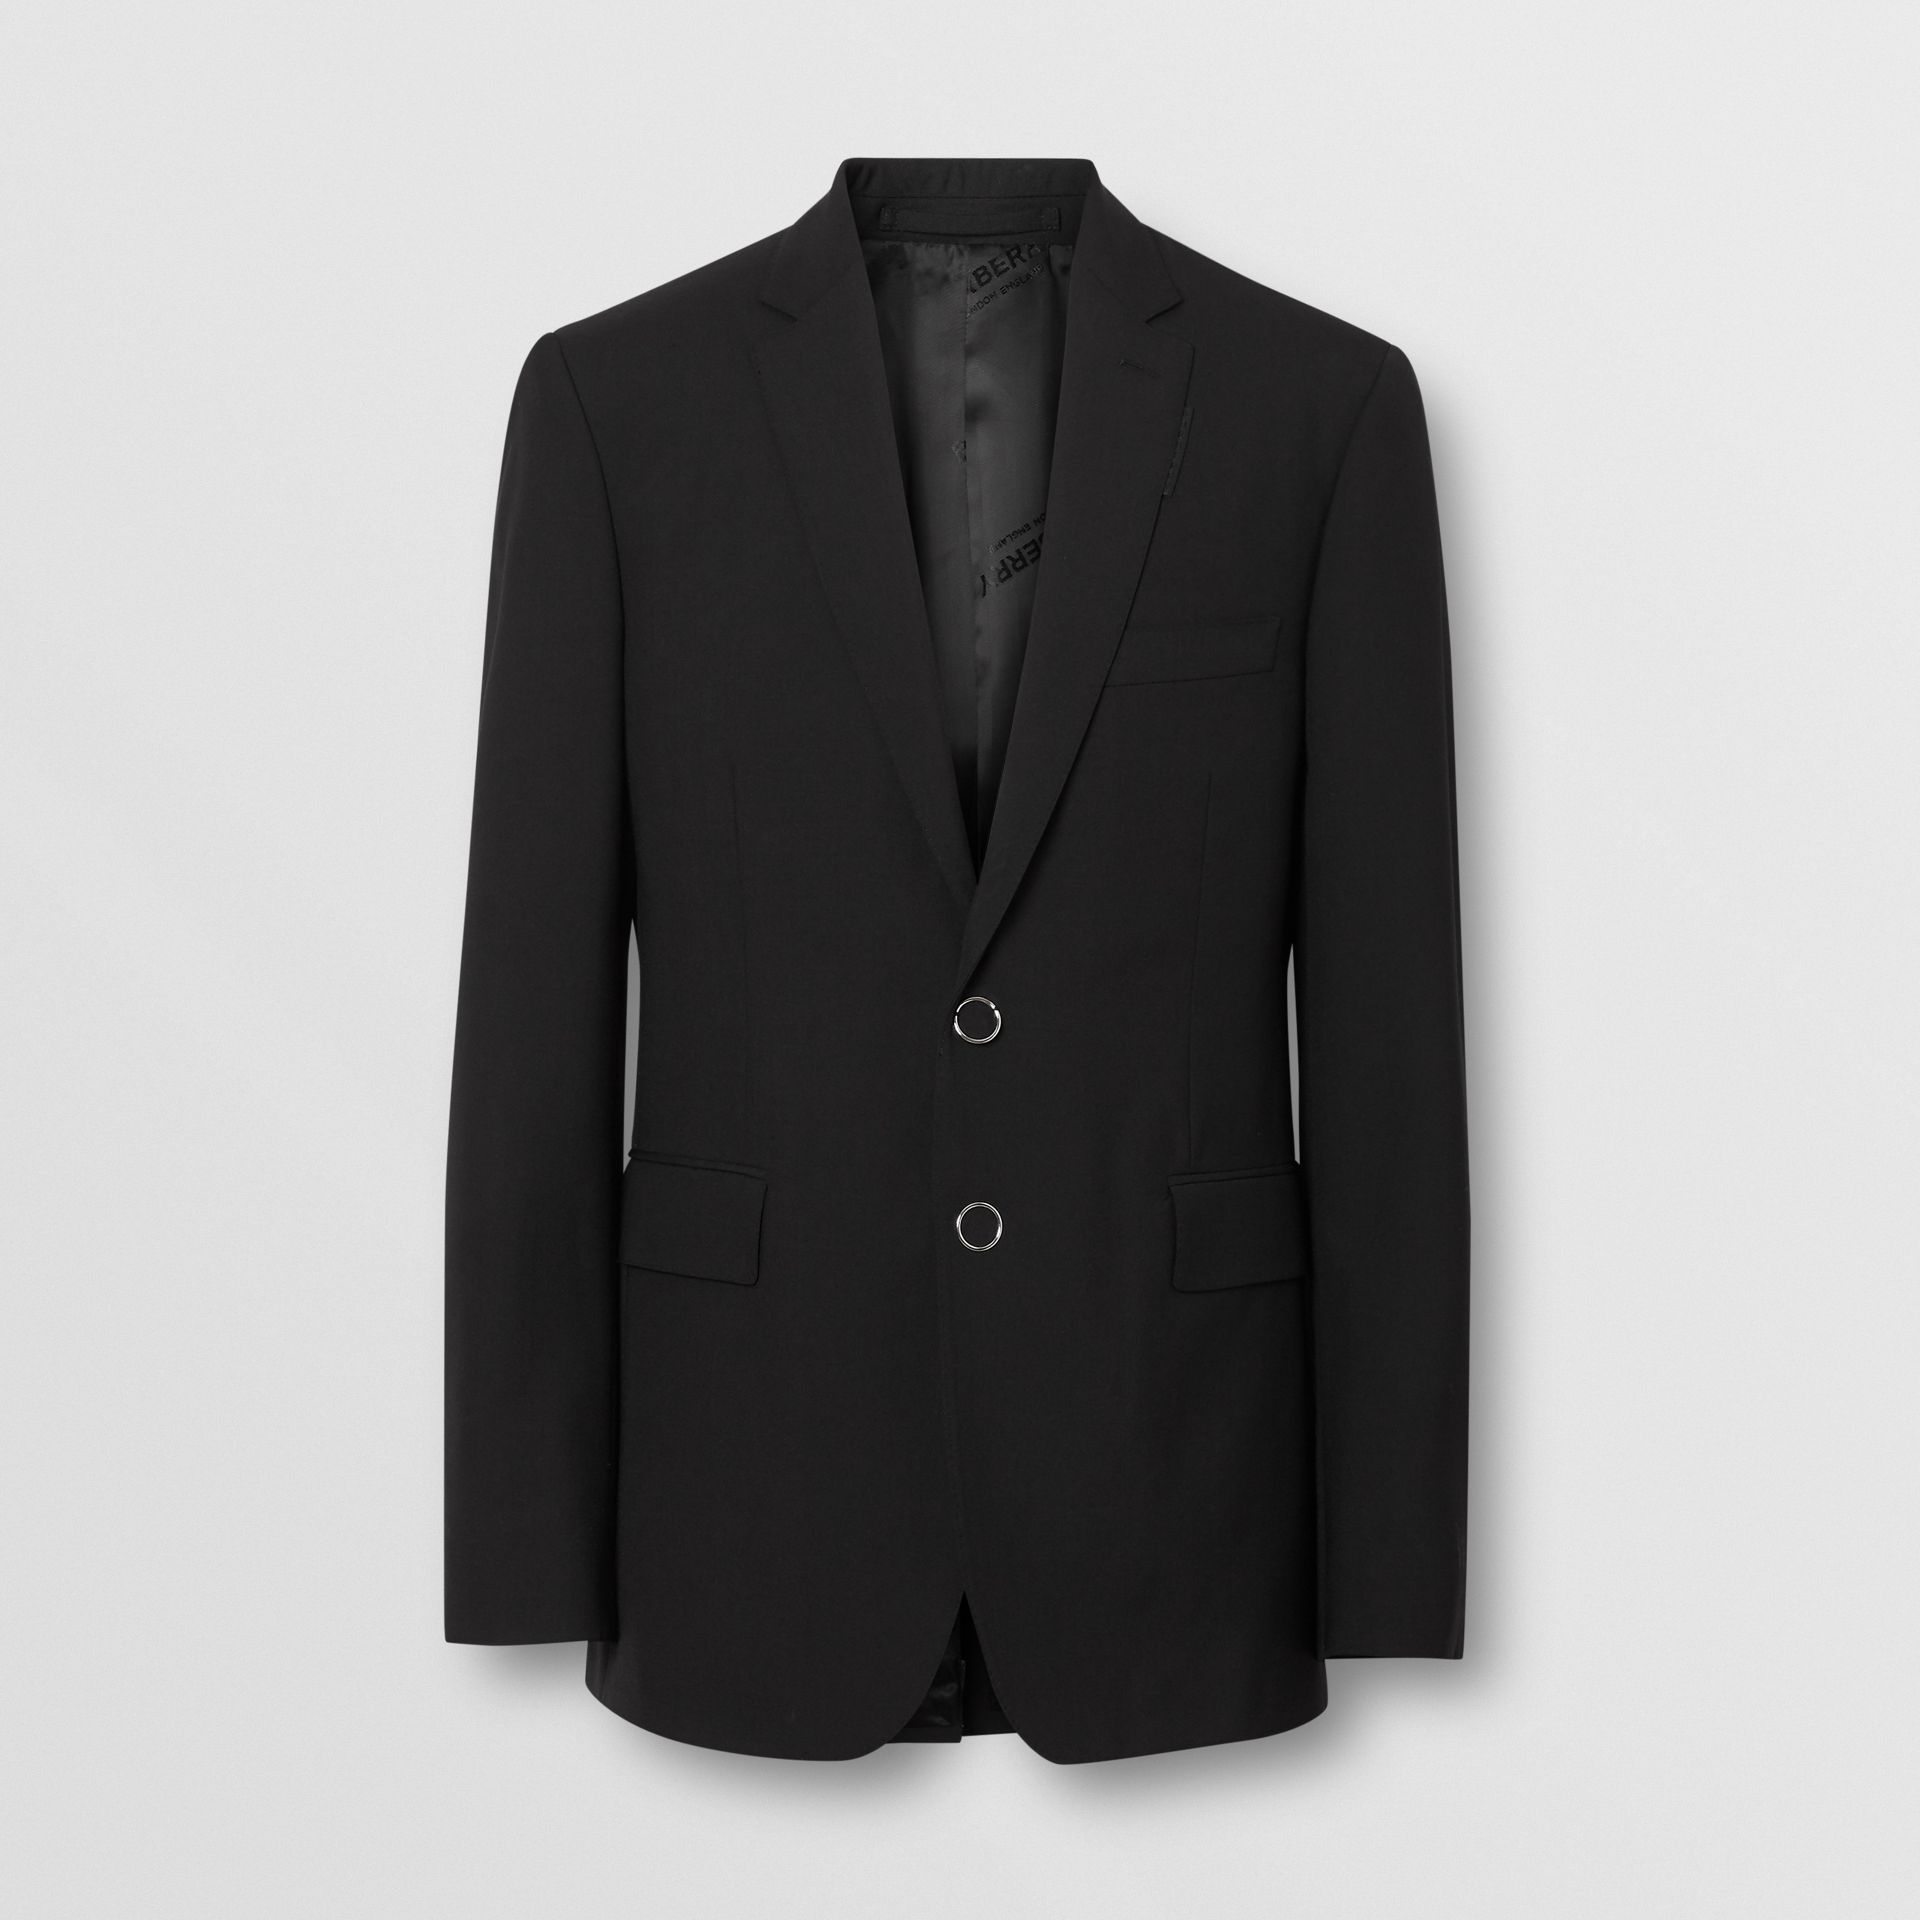 Slim Fit Press-stud Tumbled Wool Tailored Jacket in Black - Men | Burberry - gallery image 3